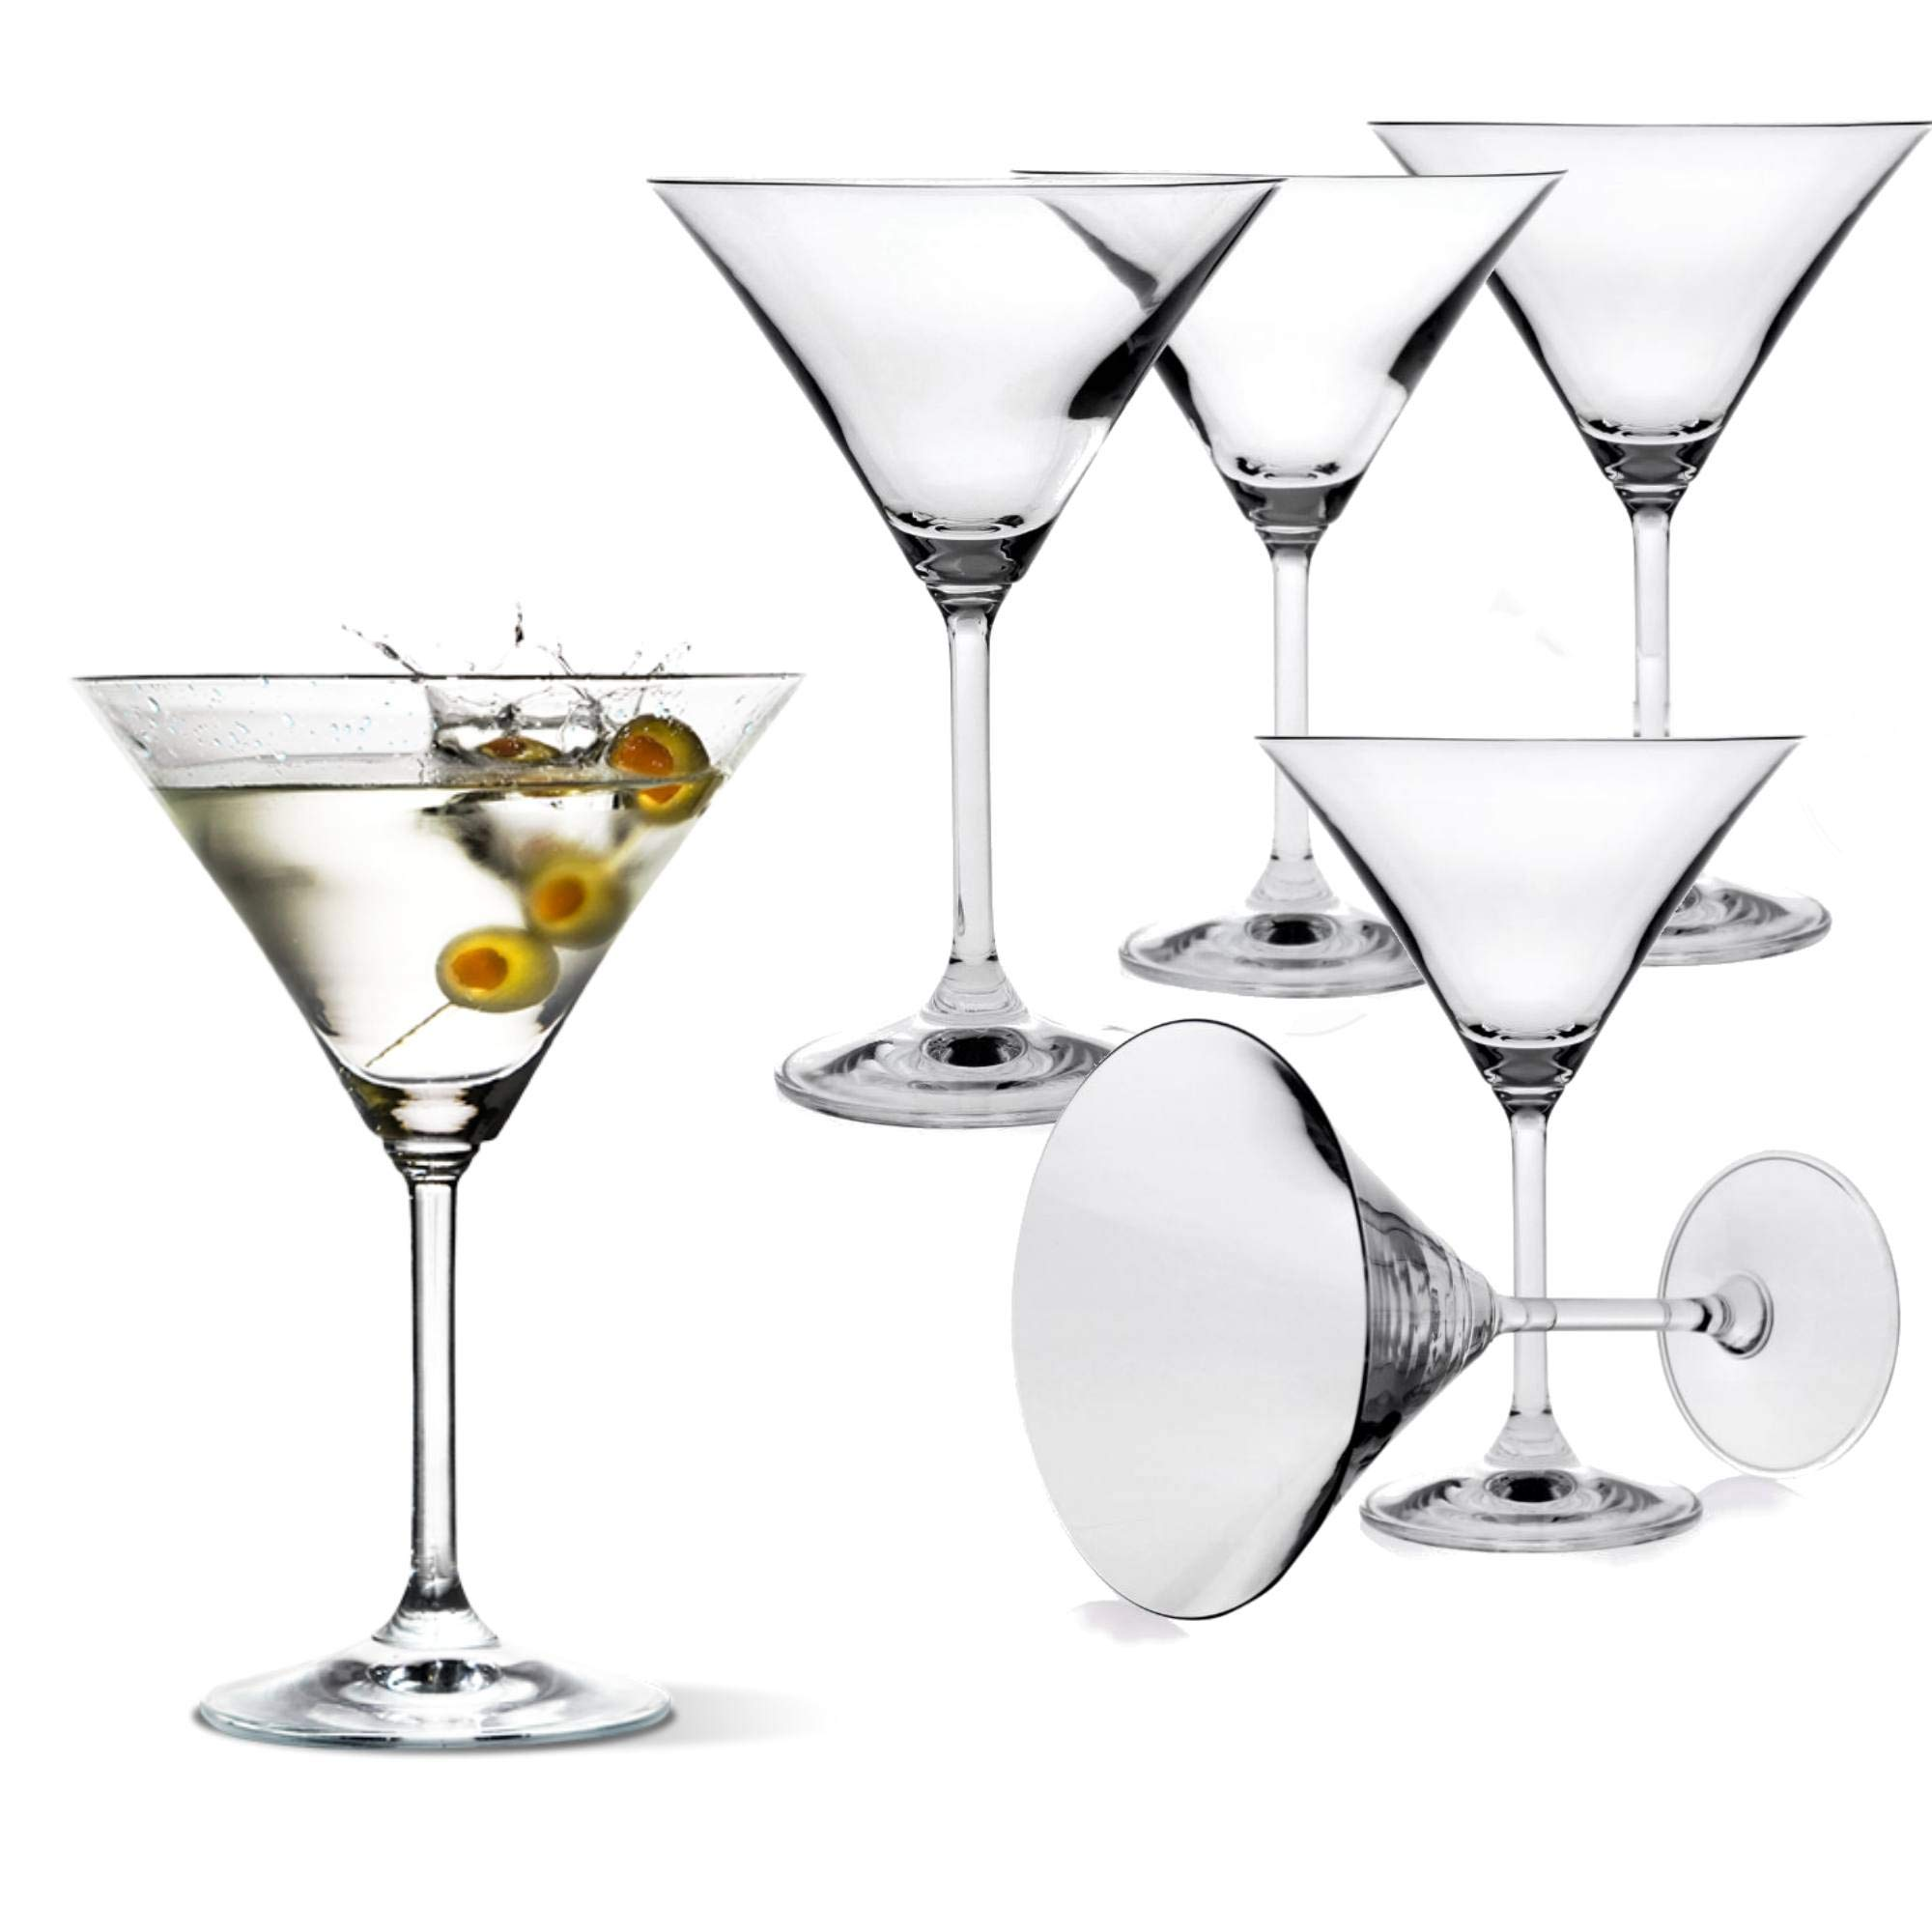 Classic Martini Glasses -Set of 6 (10 Ounce) - Perfect Cocktail Glasses with Stem by Light In The Dark